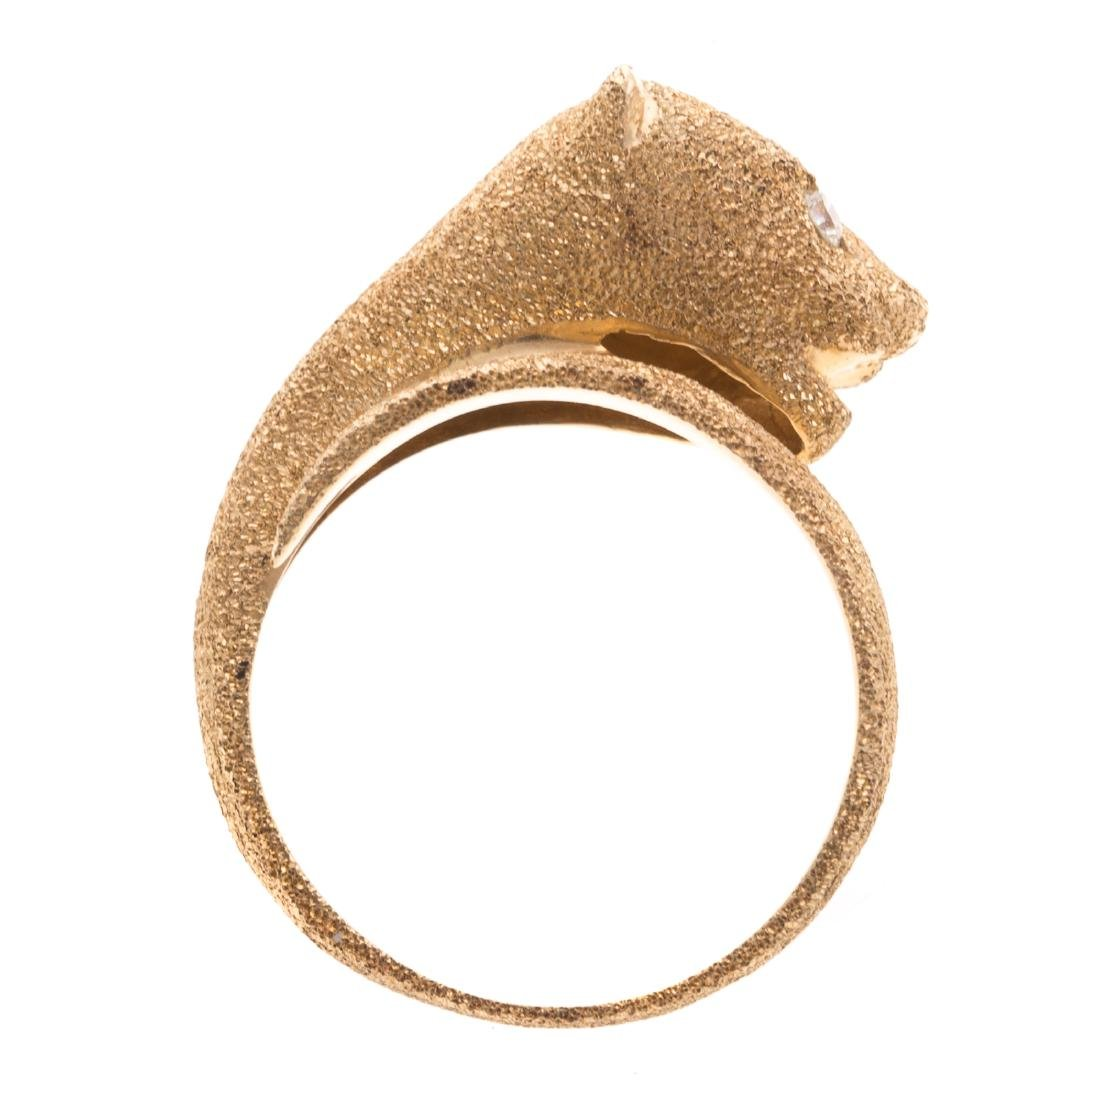 A Lady's 14K Panther Ring with Diamond Eyes - 2